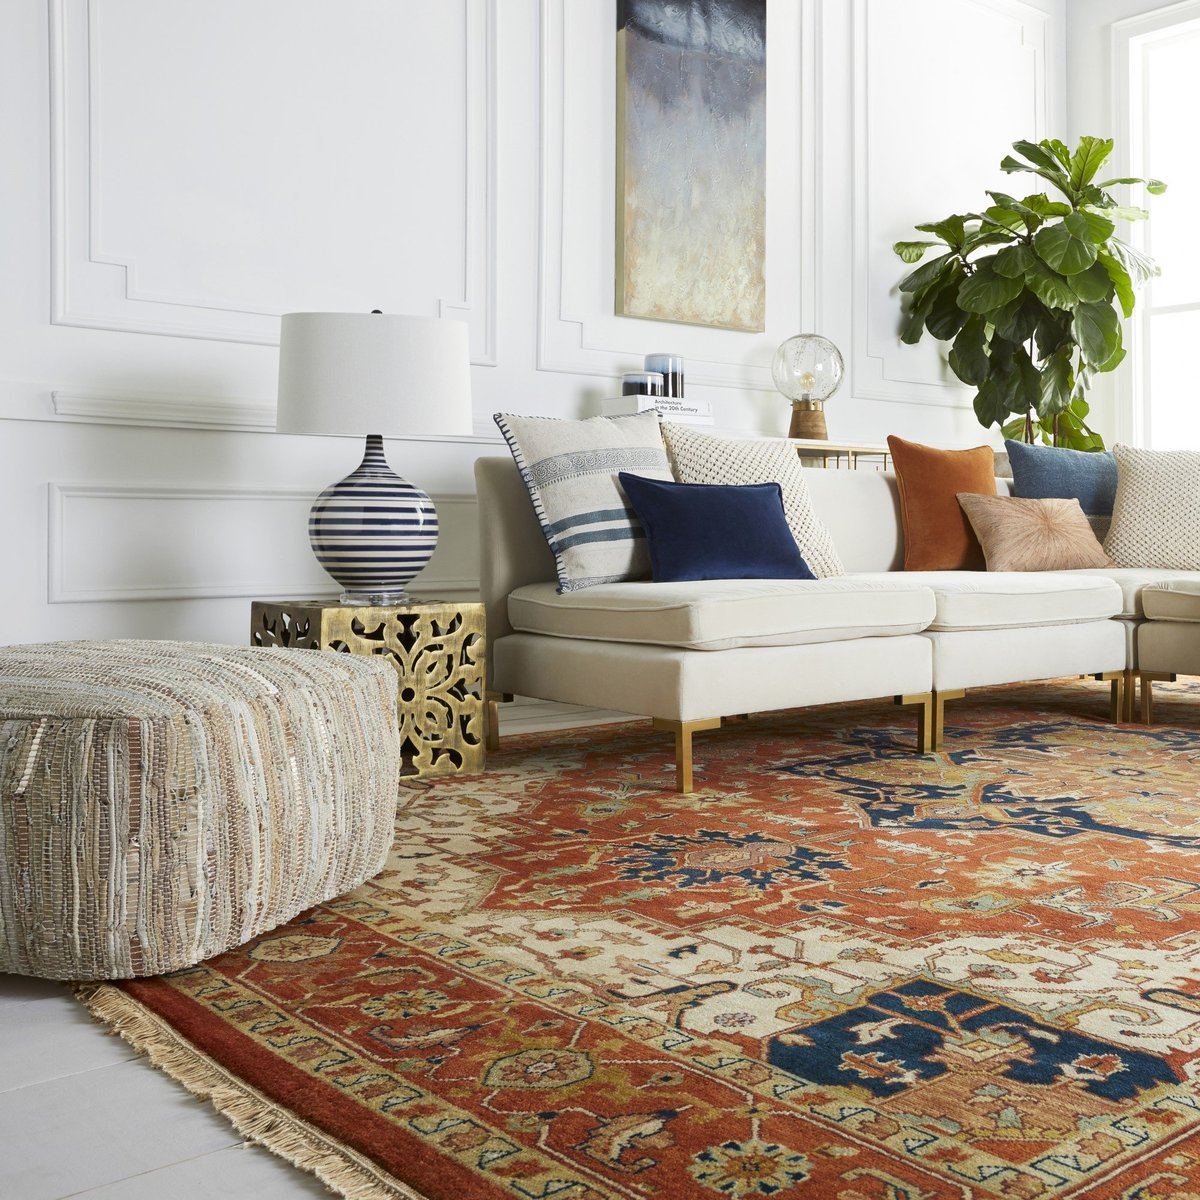 Adding traditional style with living room rugs